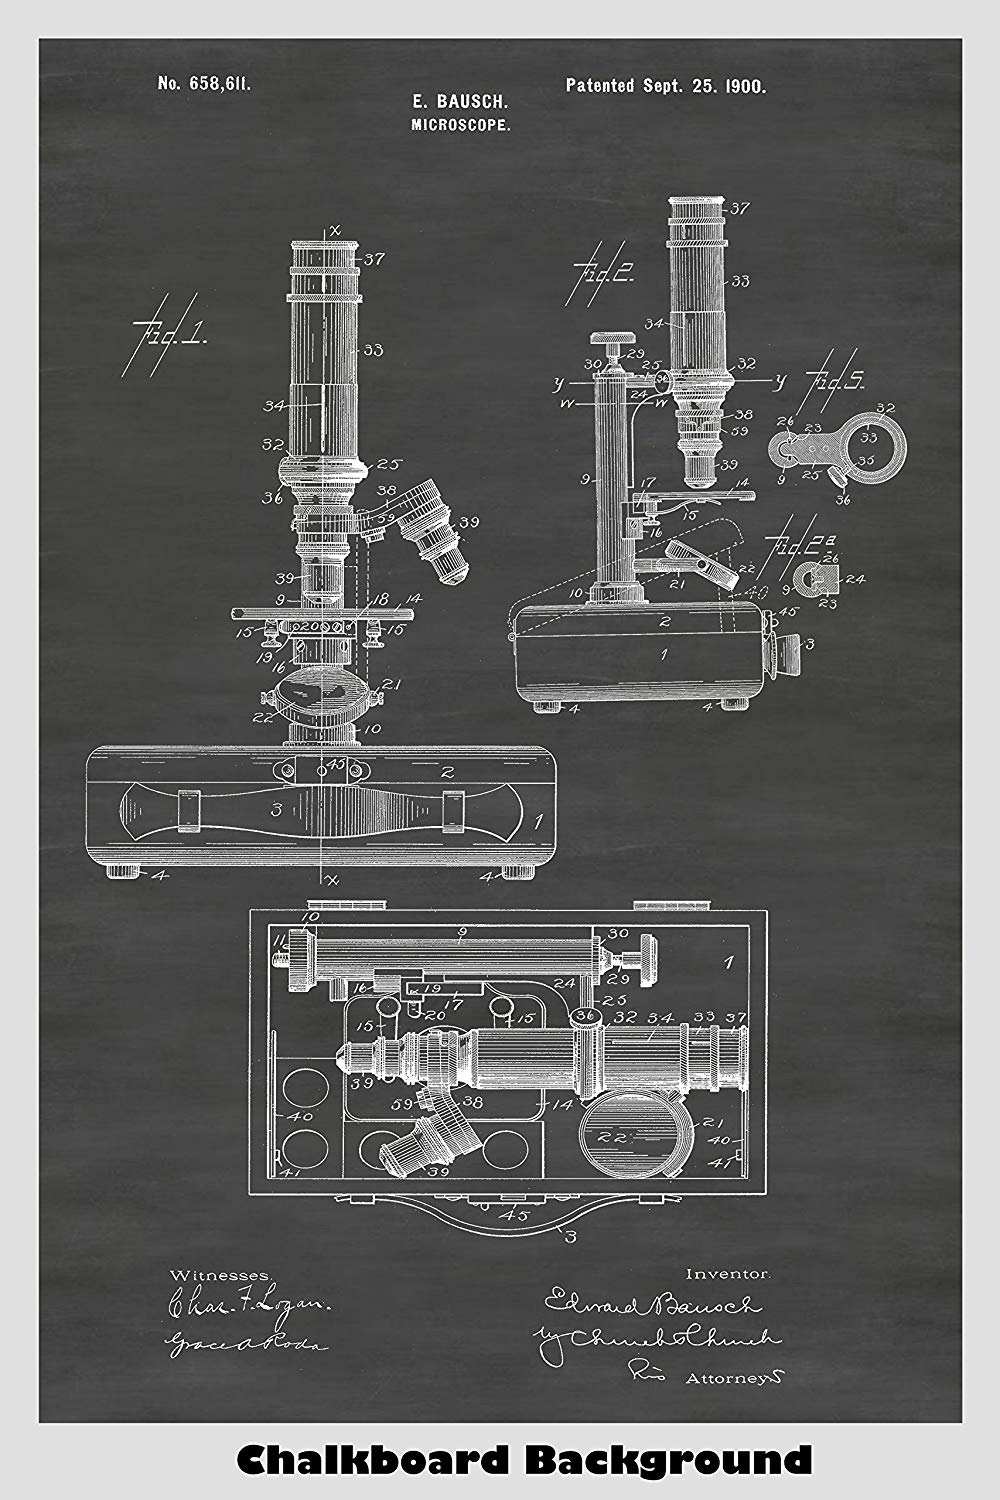 Antique Bausch Microscope Patent Art on Our Chalkboard Background